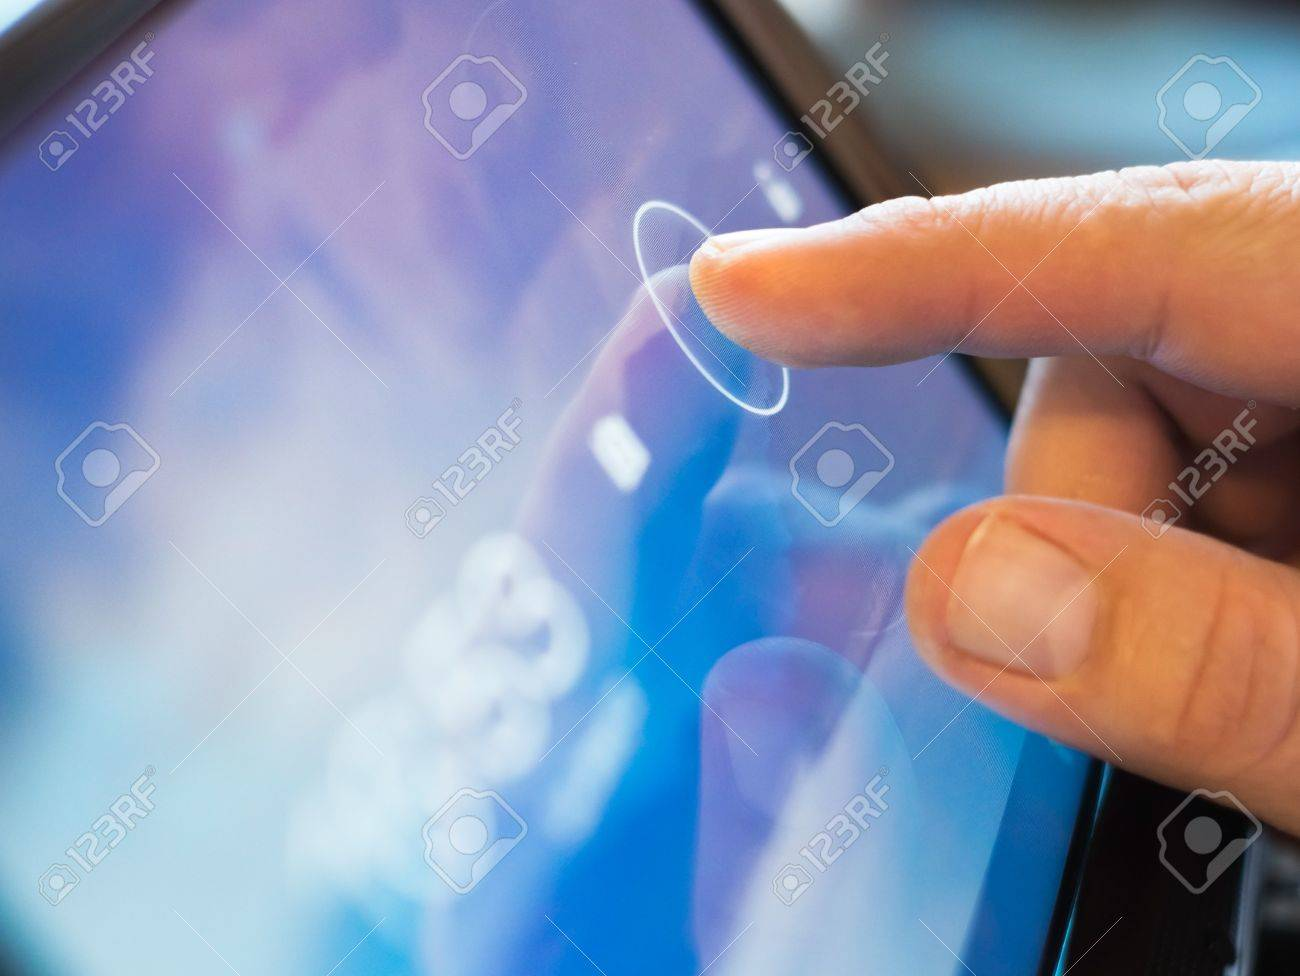 finger touching screen on tablet-pc with shallow depth of field - 15123908